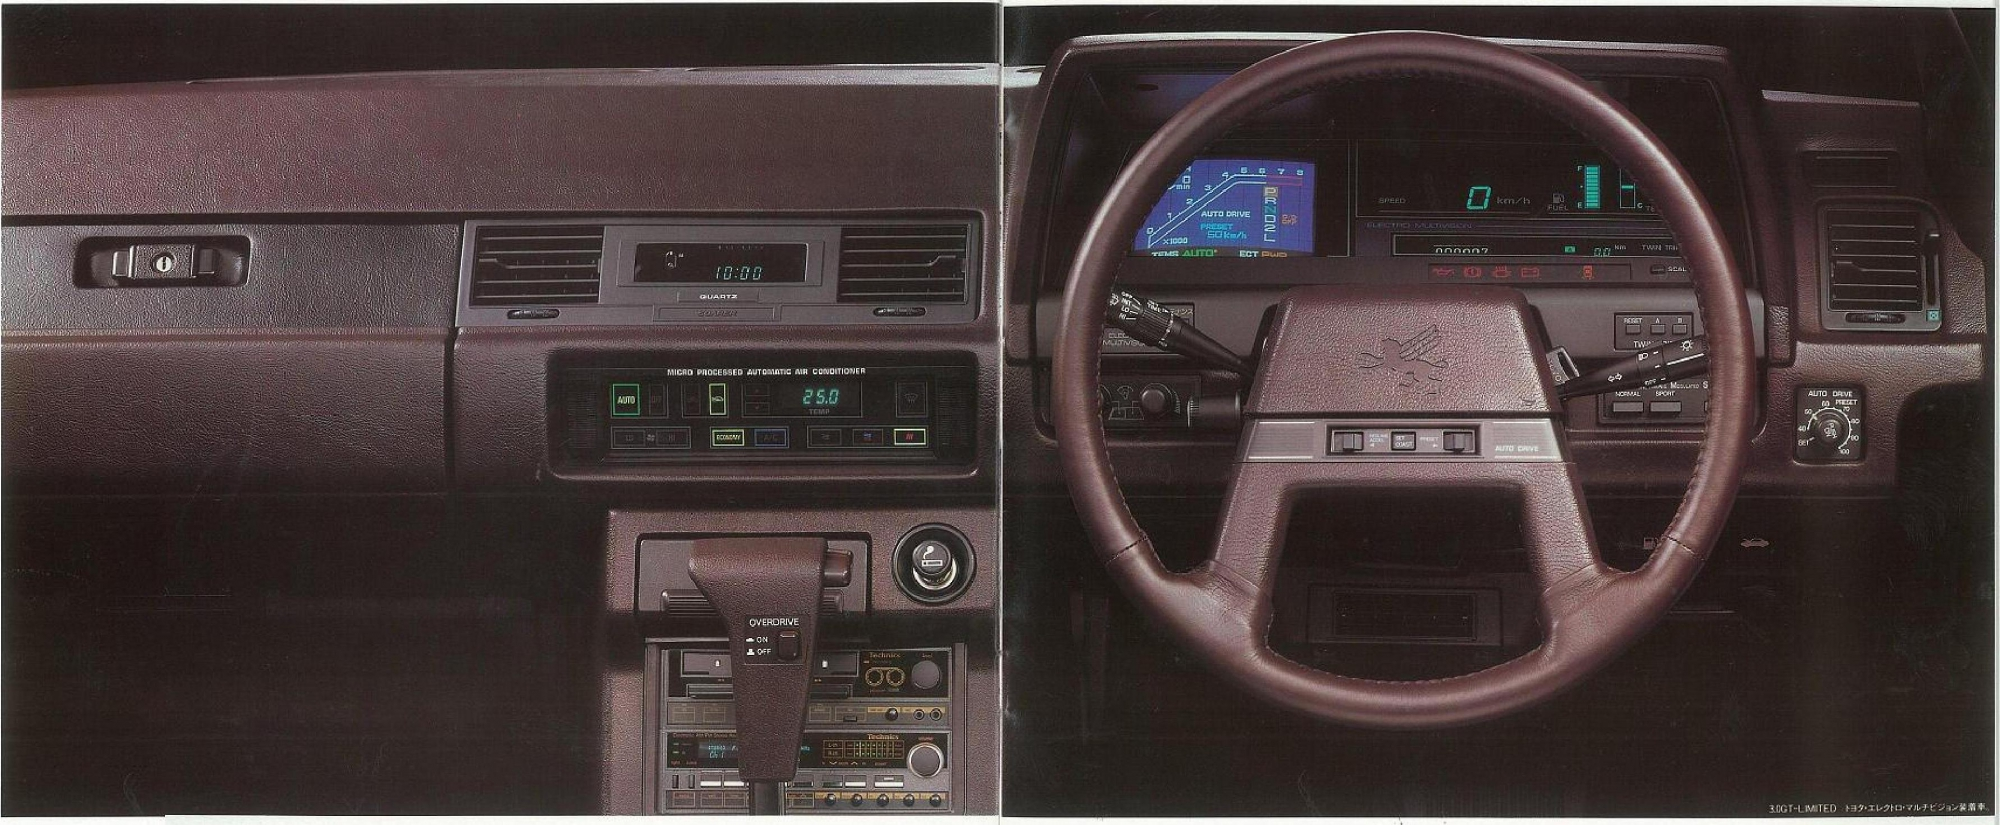 Toyota Soarer (1981-1985). Note that this dashboard is specific to the 3.0 GT Limited.